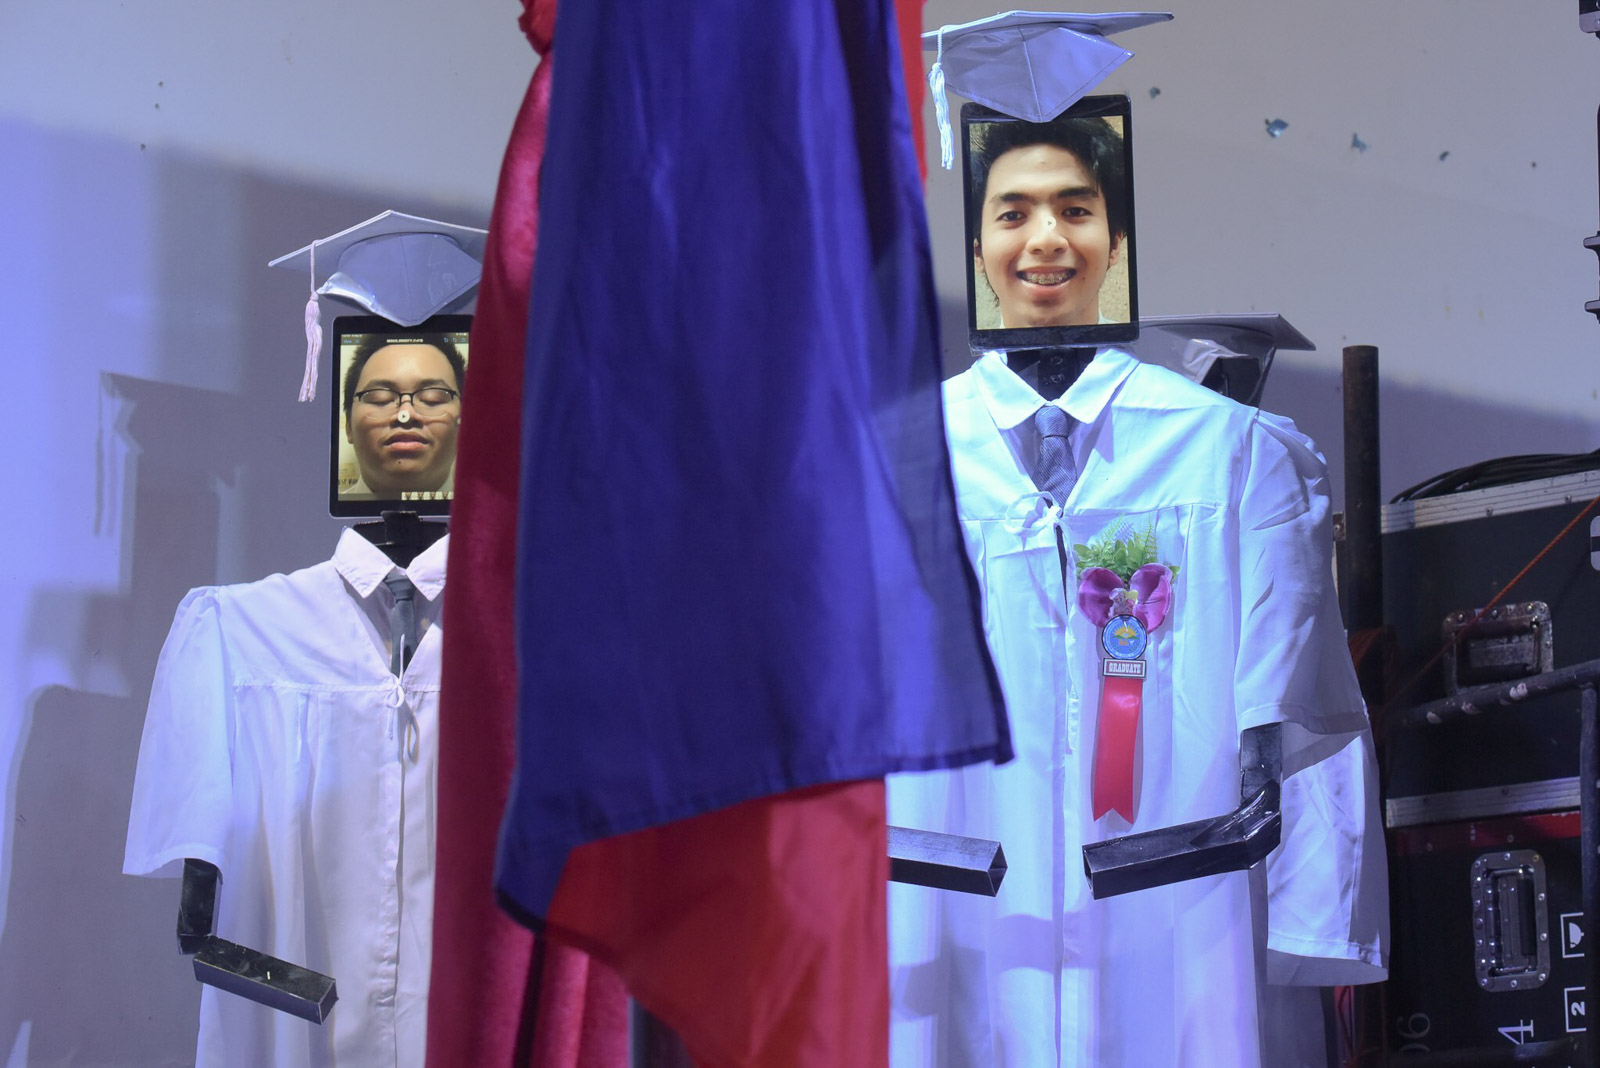 IN PHOTOS: Robots represent graduating high school students in Taguig